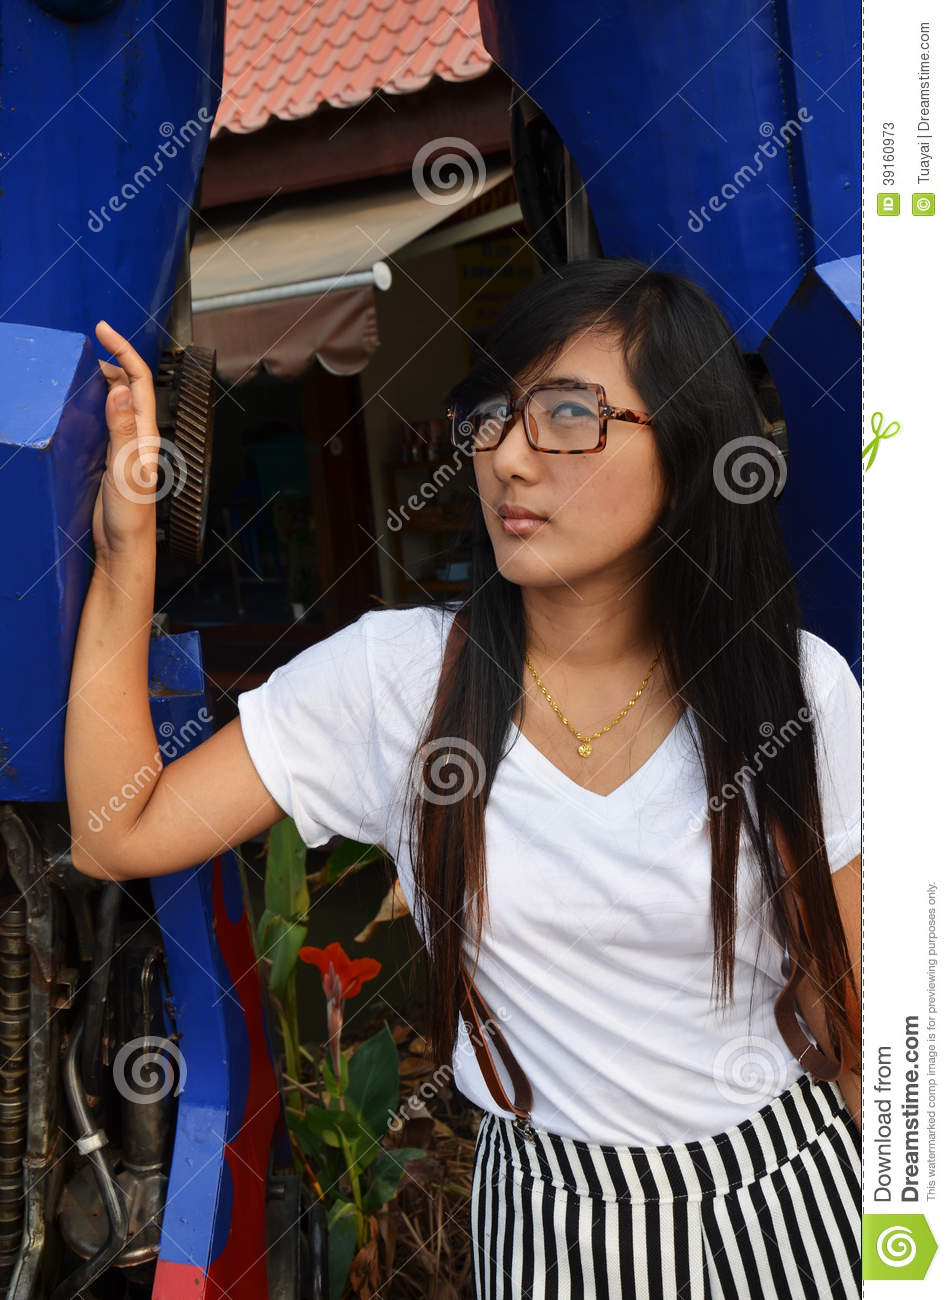 Thai woman Long hair portrait